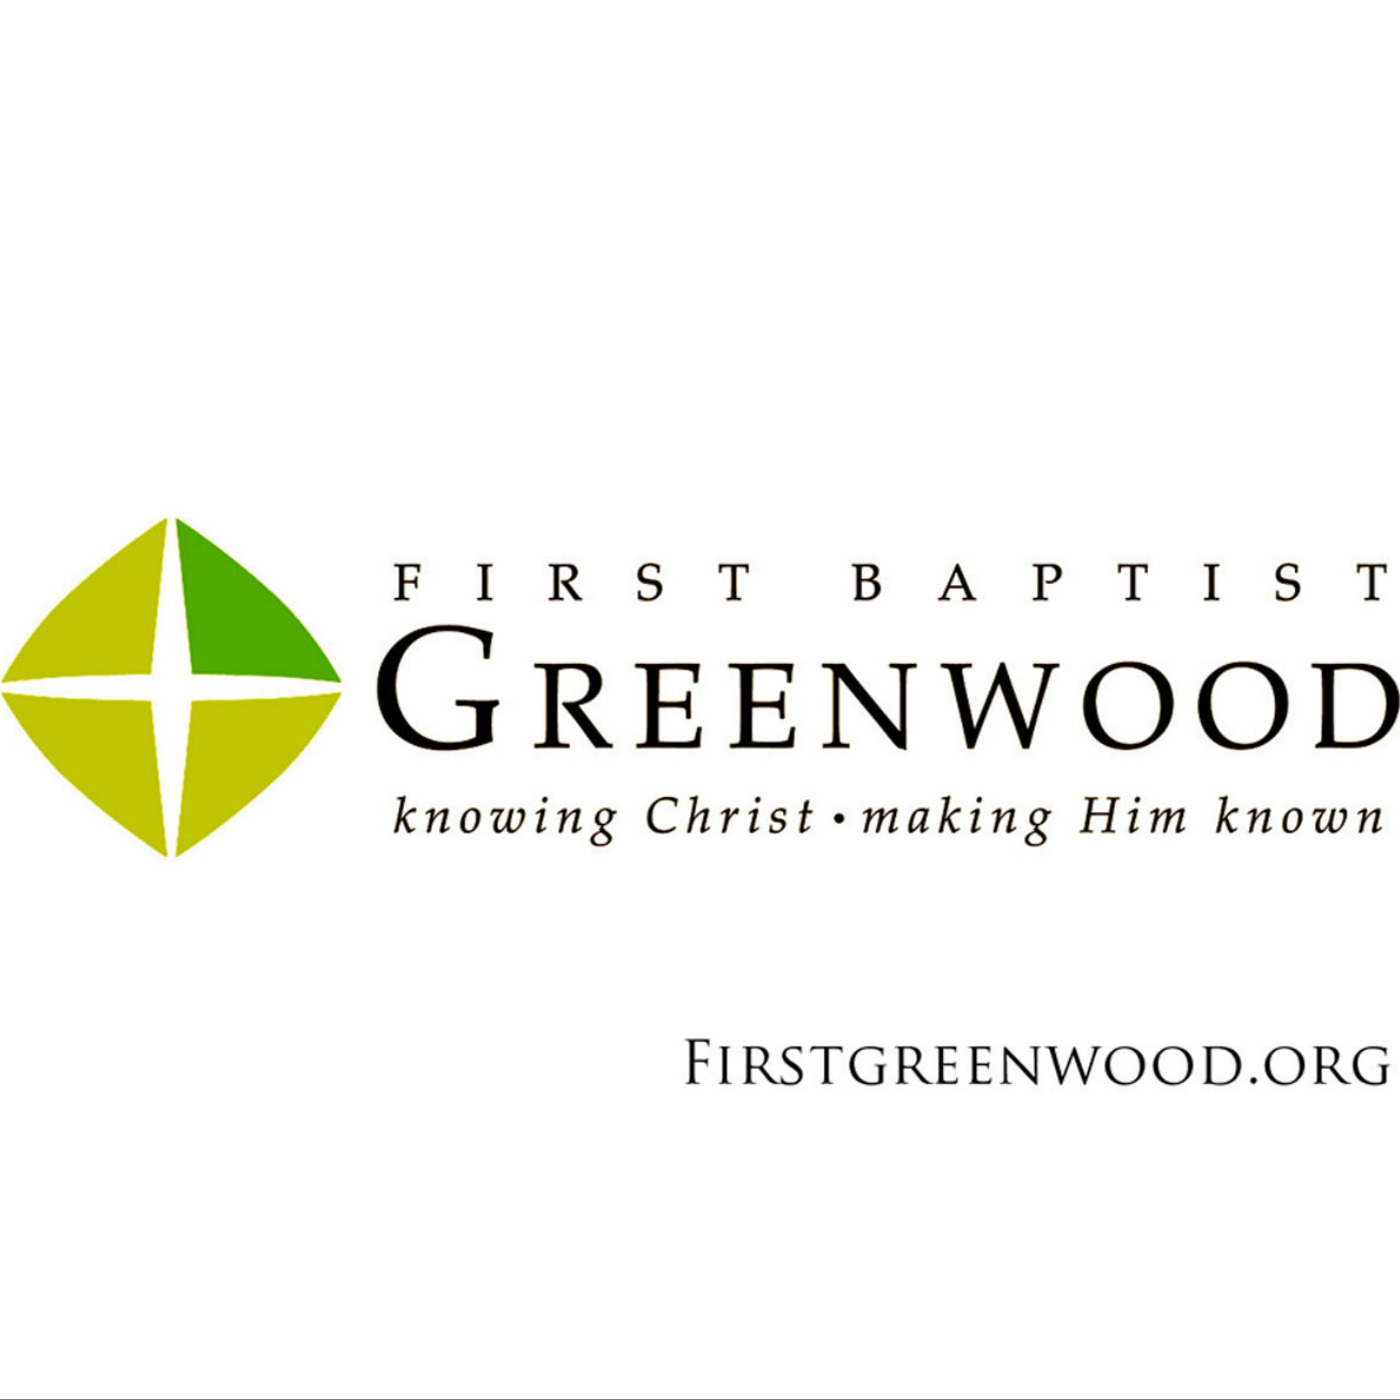 First Baptist Greenwood